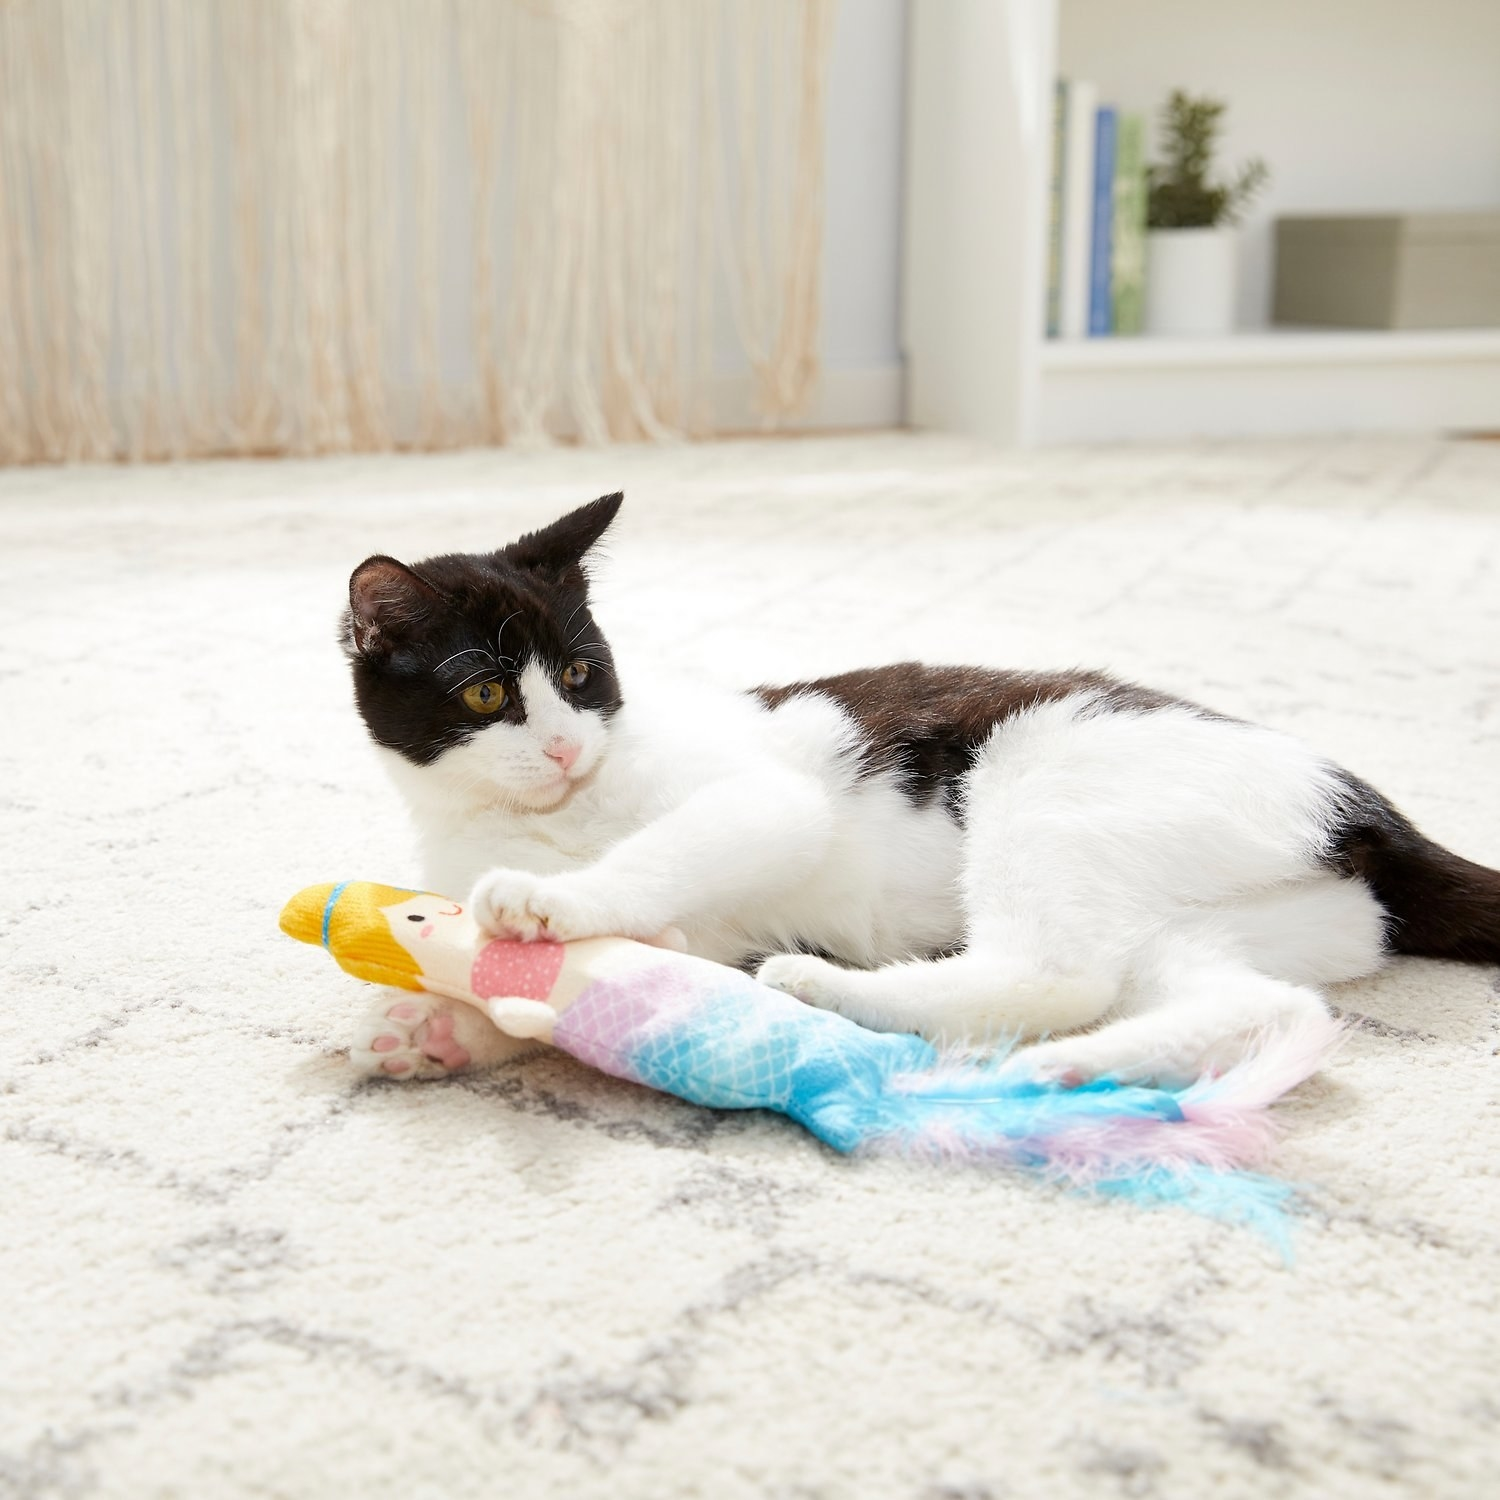 a cat with the mermaid toy, which has a feather tail